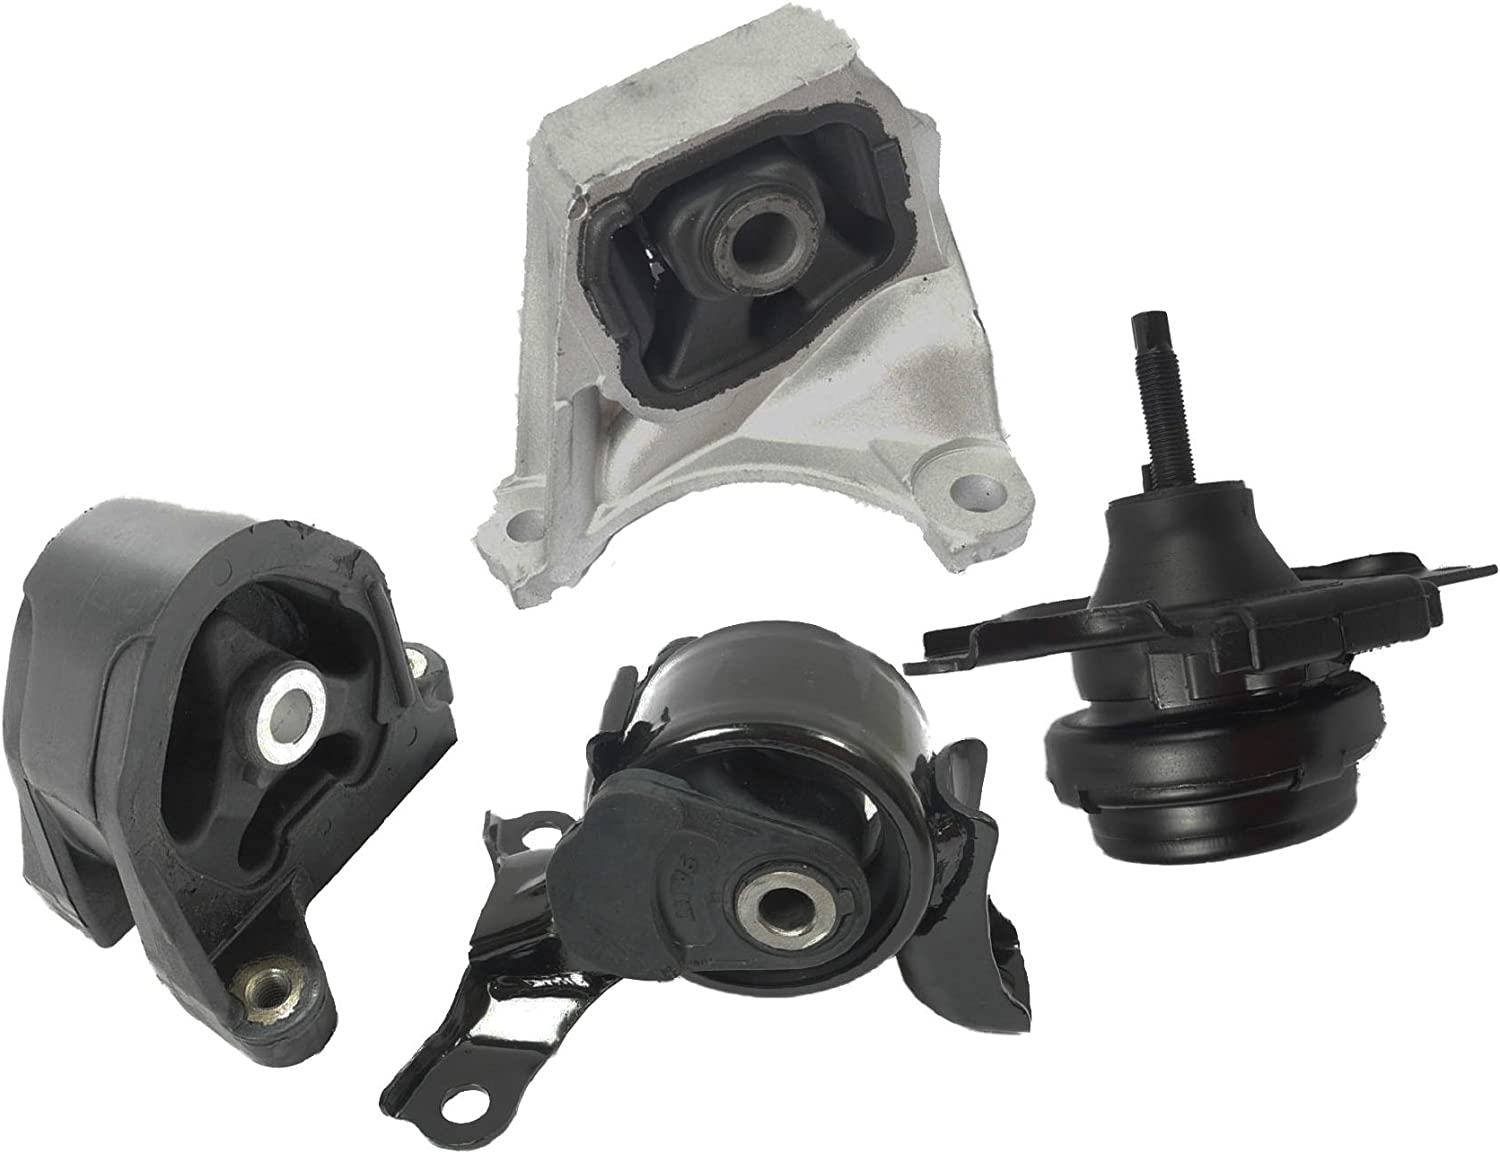 HD Engine  Transmission Mount Set Fit for HONDA Civic Manual ACURA RSX Type-S